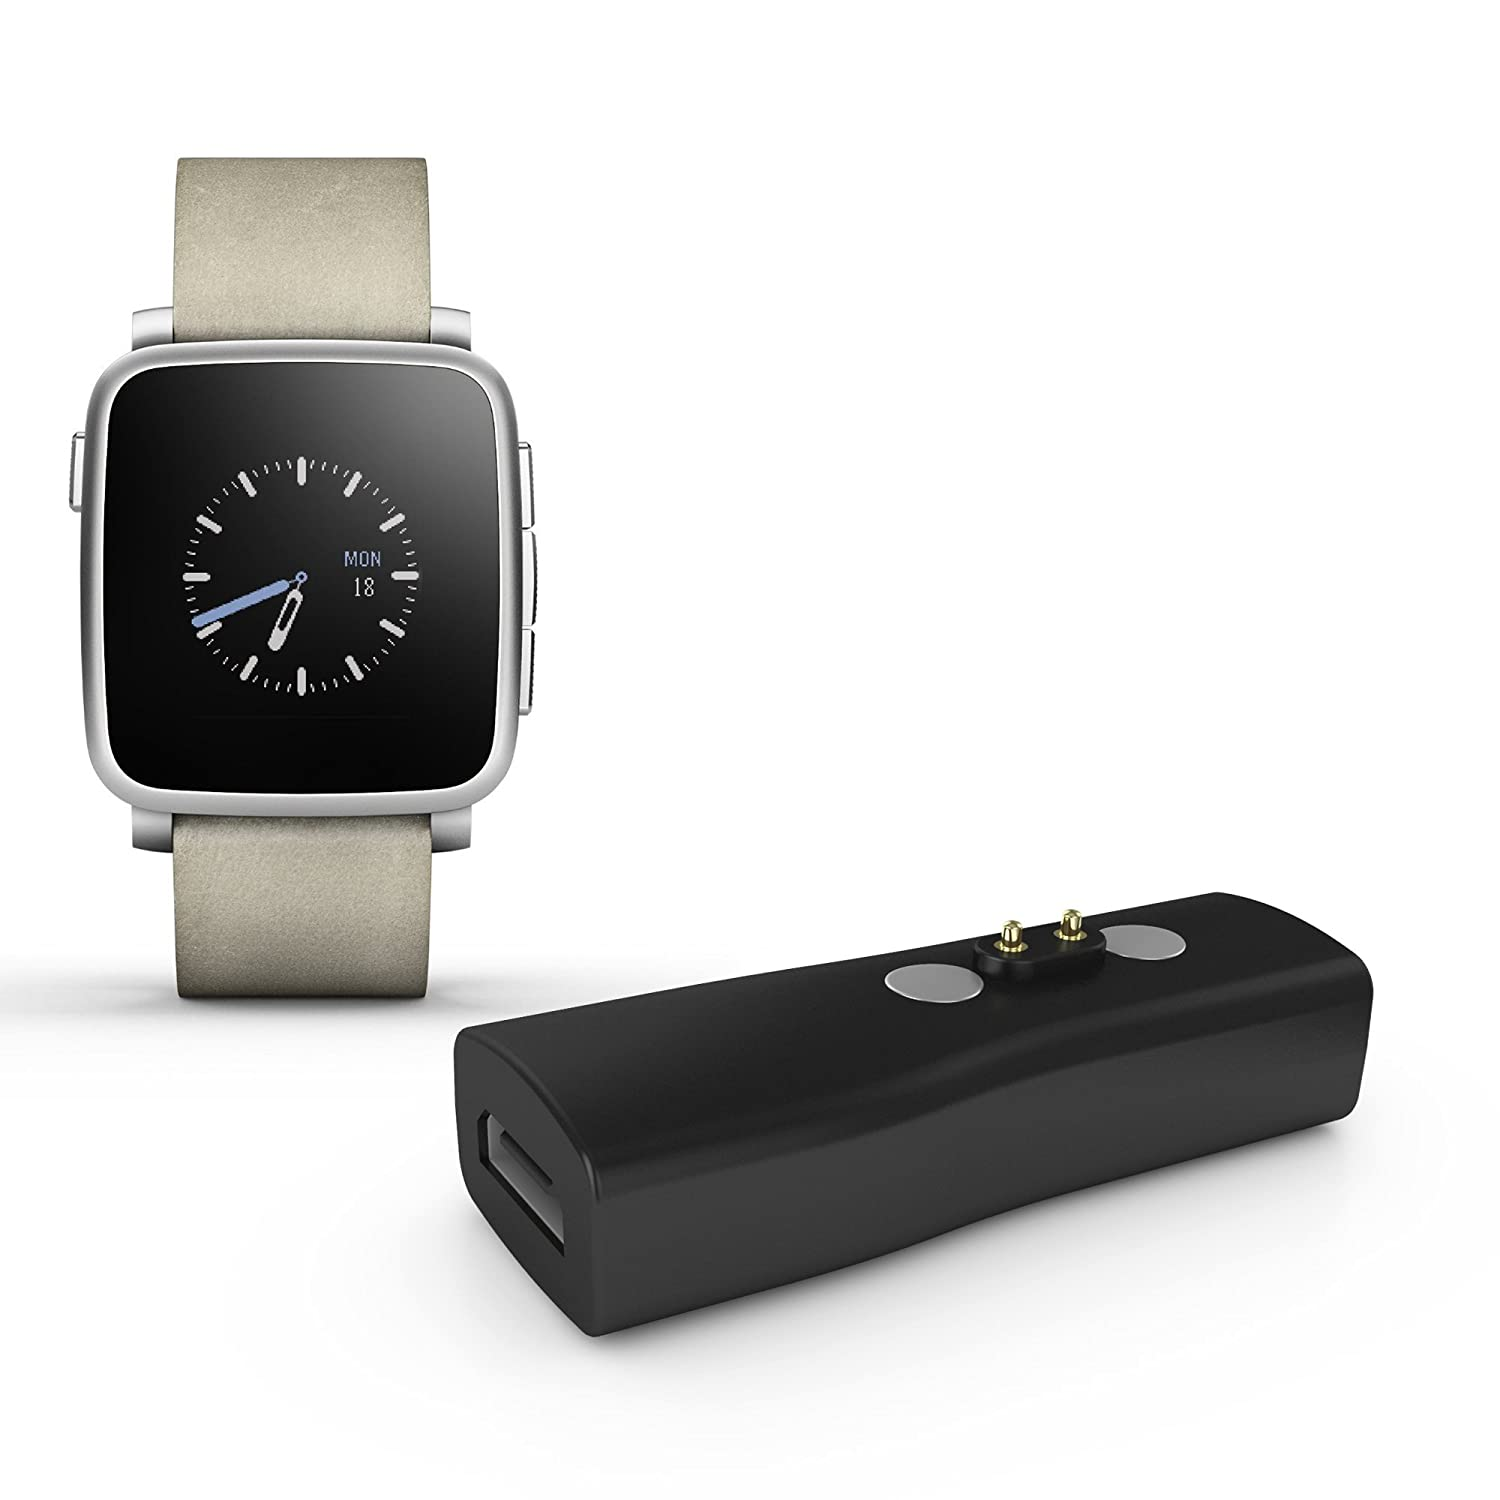 GOOQ® Charger Adapter without USB Cable for Pebble Time Round Smartwatch Apple/ Android …